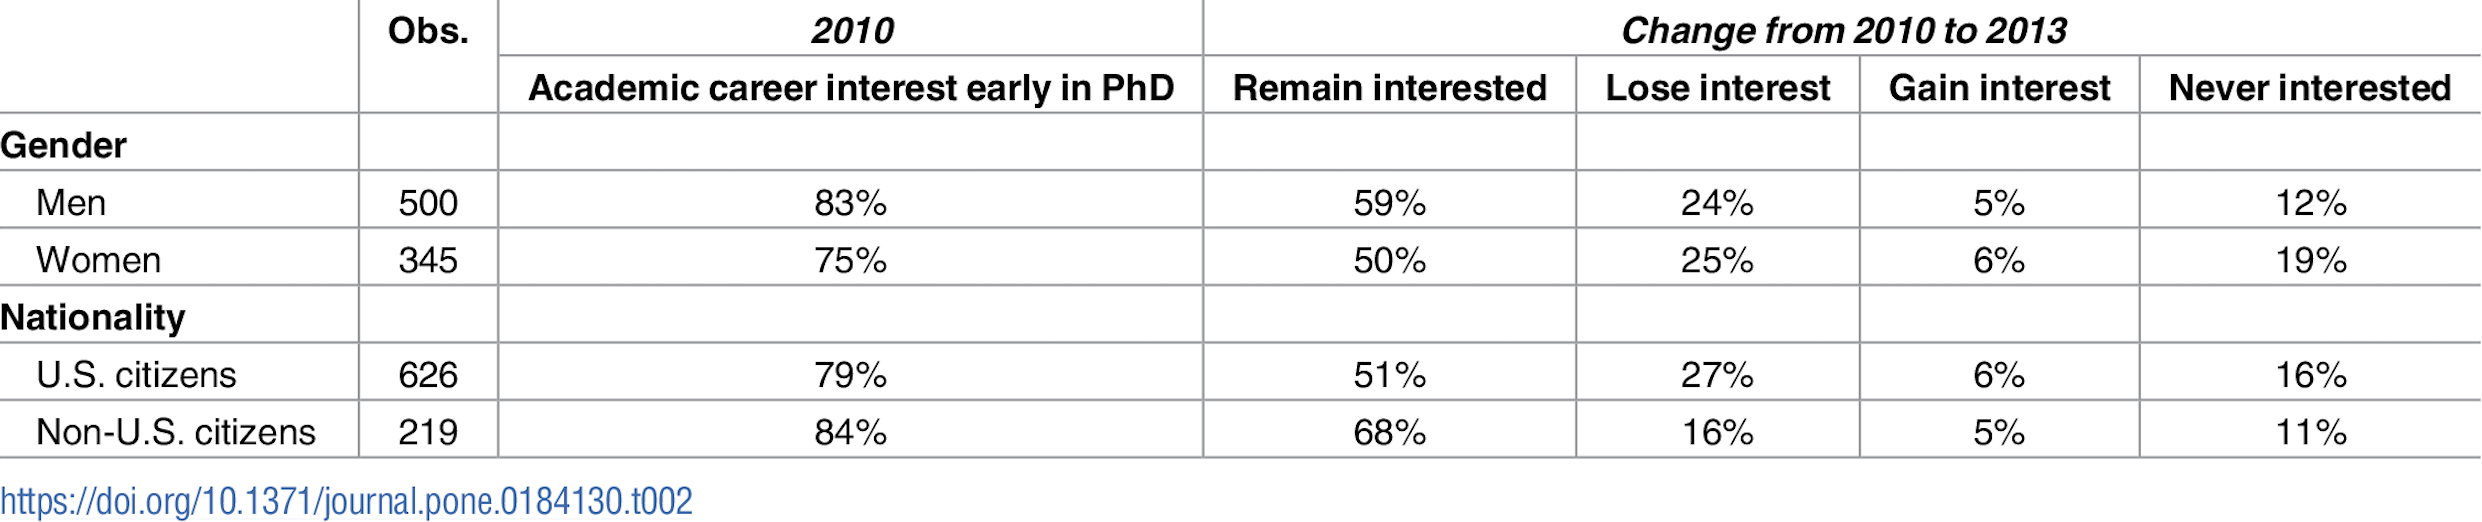 Chart breaks down interest in academic career by gender and nationality. In 2010, early in Ph.D., 83 percent of men are interested and 75 percent of women are interested, while 79 percent of U.S. citizens are interested and 84 percent of noncitizens are interested. In 2013, later in the Ph.D., 59 percent of men, 50 percent of women, 51 percent of U.S. citizens and 68 percent of noncitizens remain interested. 24 percent of men, 25 percent of women, 27 percent of U.S. citizens and 16 percent of noncitizens have lost interest. 5 percent of men, 6 percent of women, 6 percent of U.S. citizens and 5 percent of noncitizens have gained interest. 12 percent of men, 19 percent of women, 16 percent of U.S. citizens and 11 percent of noncitizens were never interested.